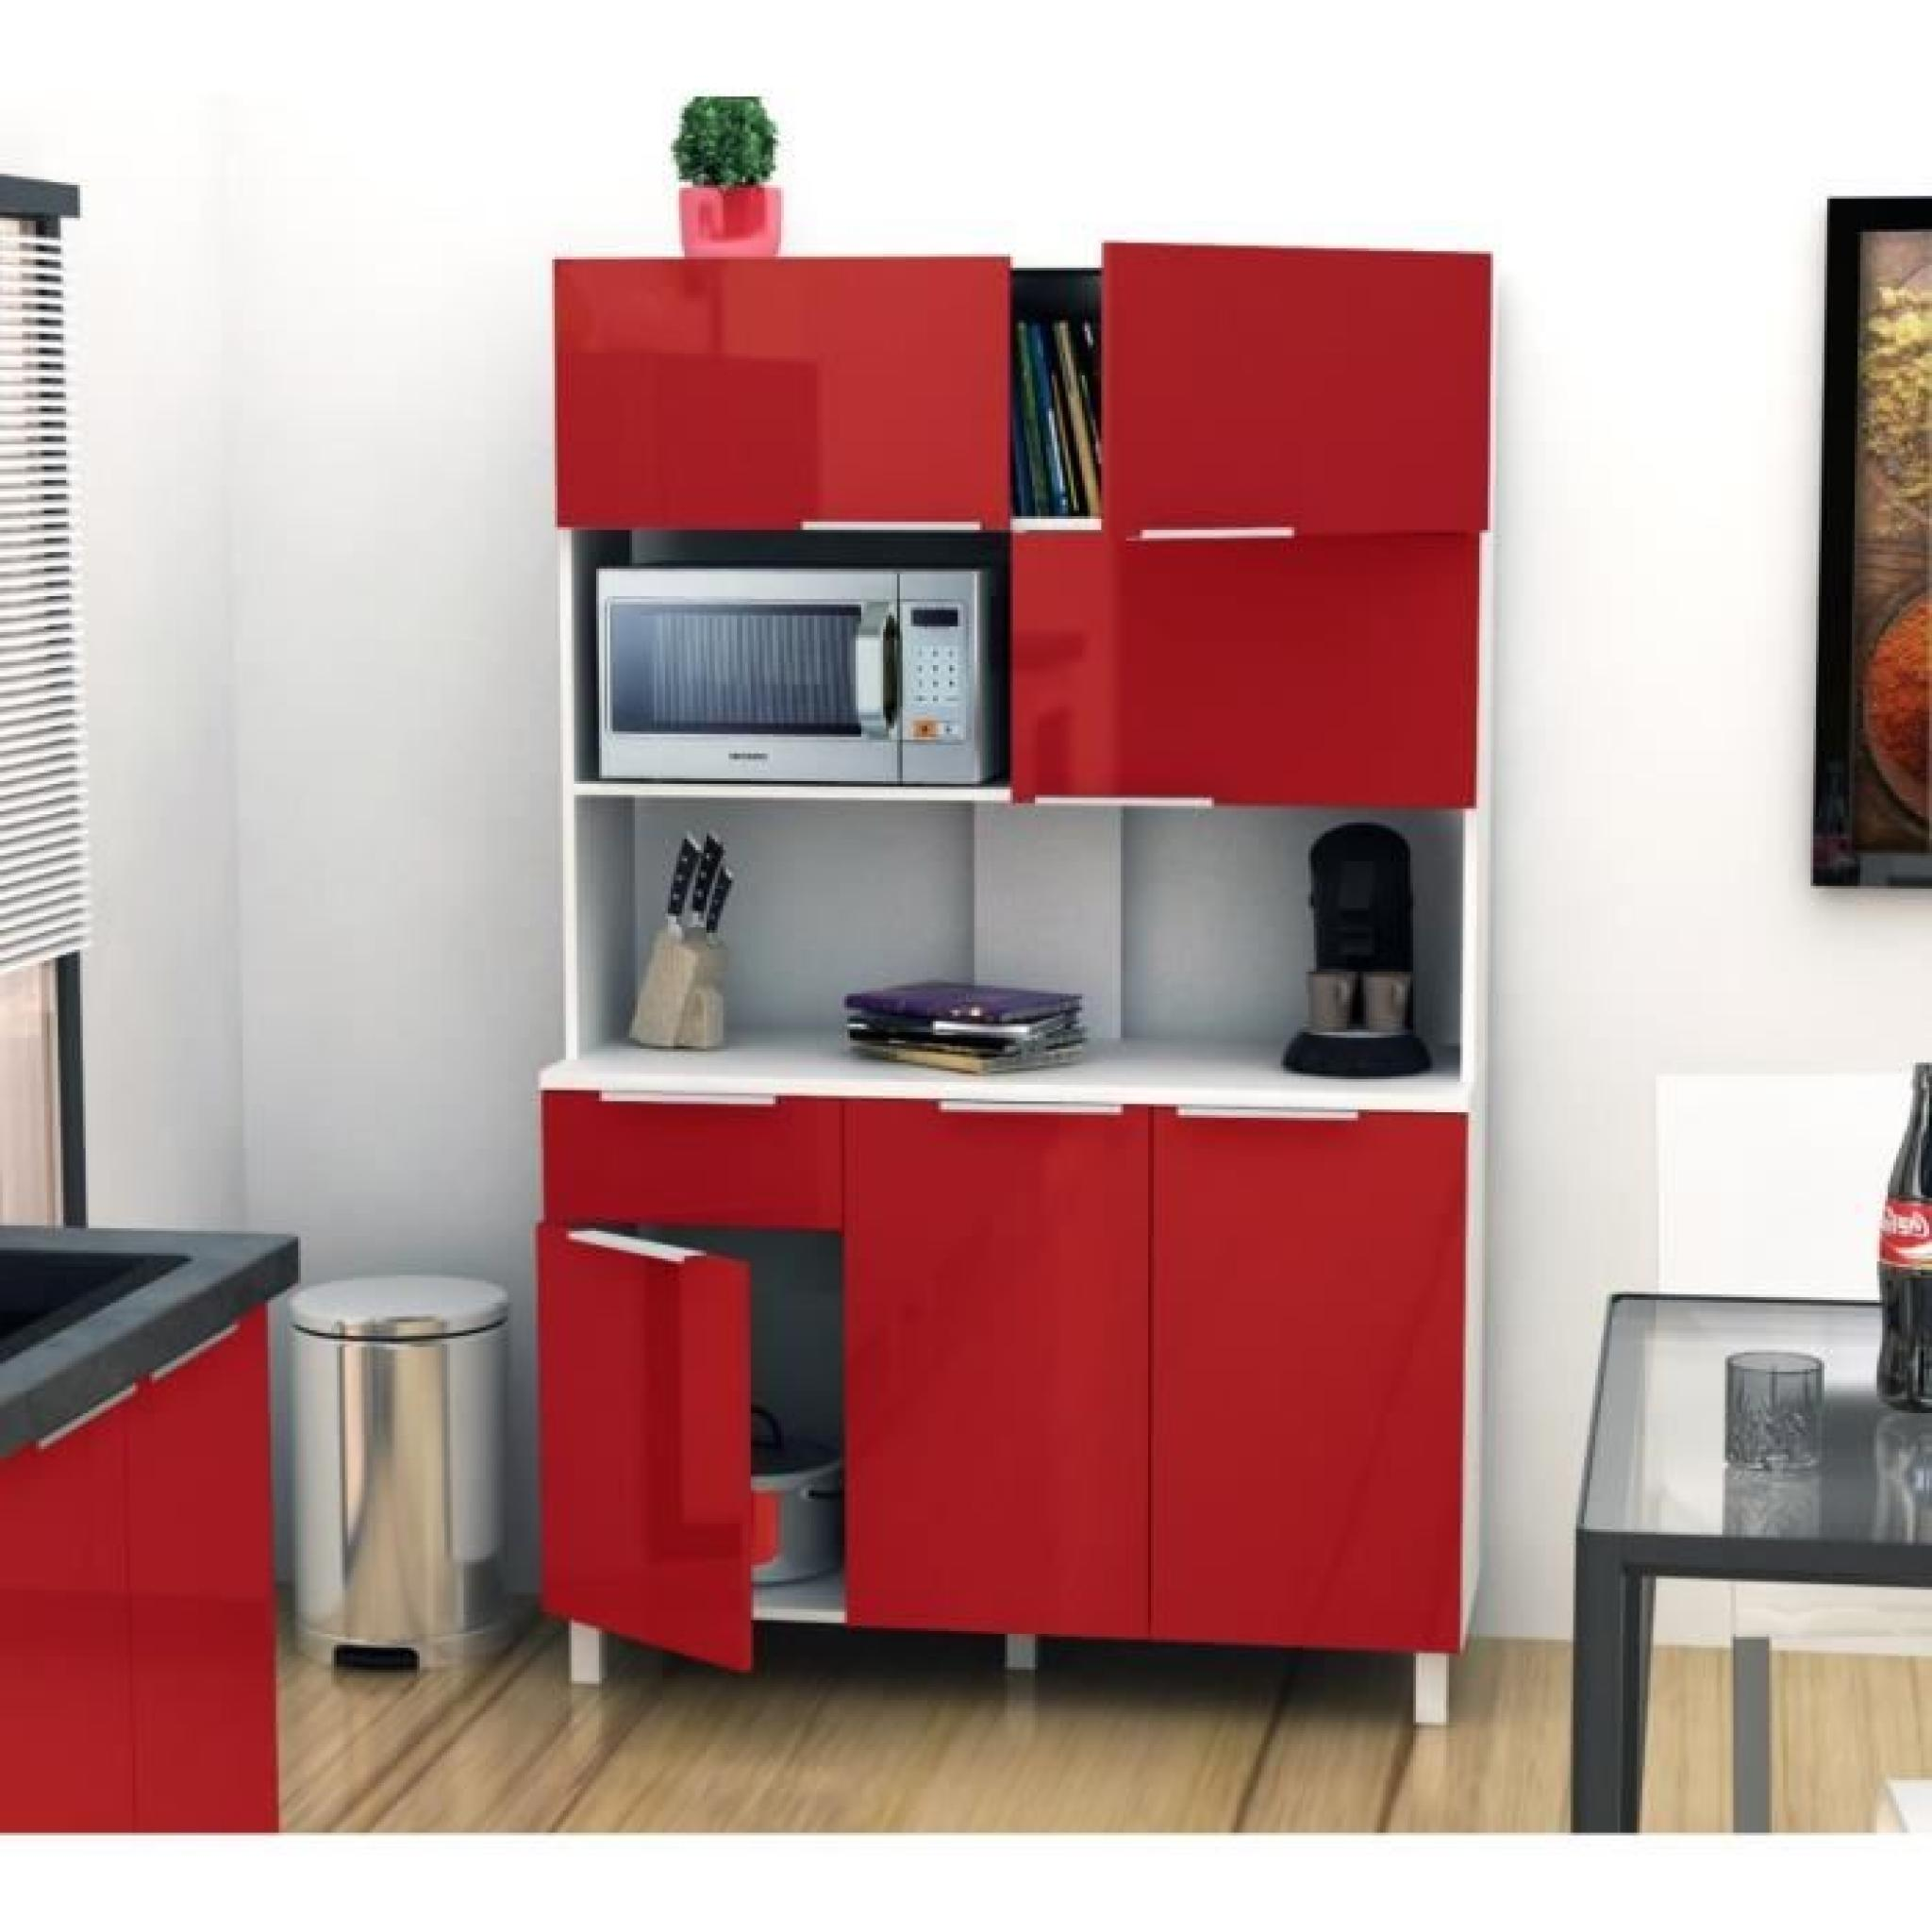 lova buffet de cuisine 120 cm rouge haute brillance achat vente buffet de cuisine pas cher. Black Bedroom Furniture Sets. Home Design Ideas